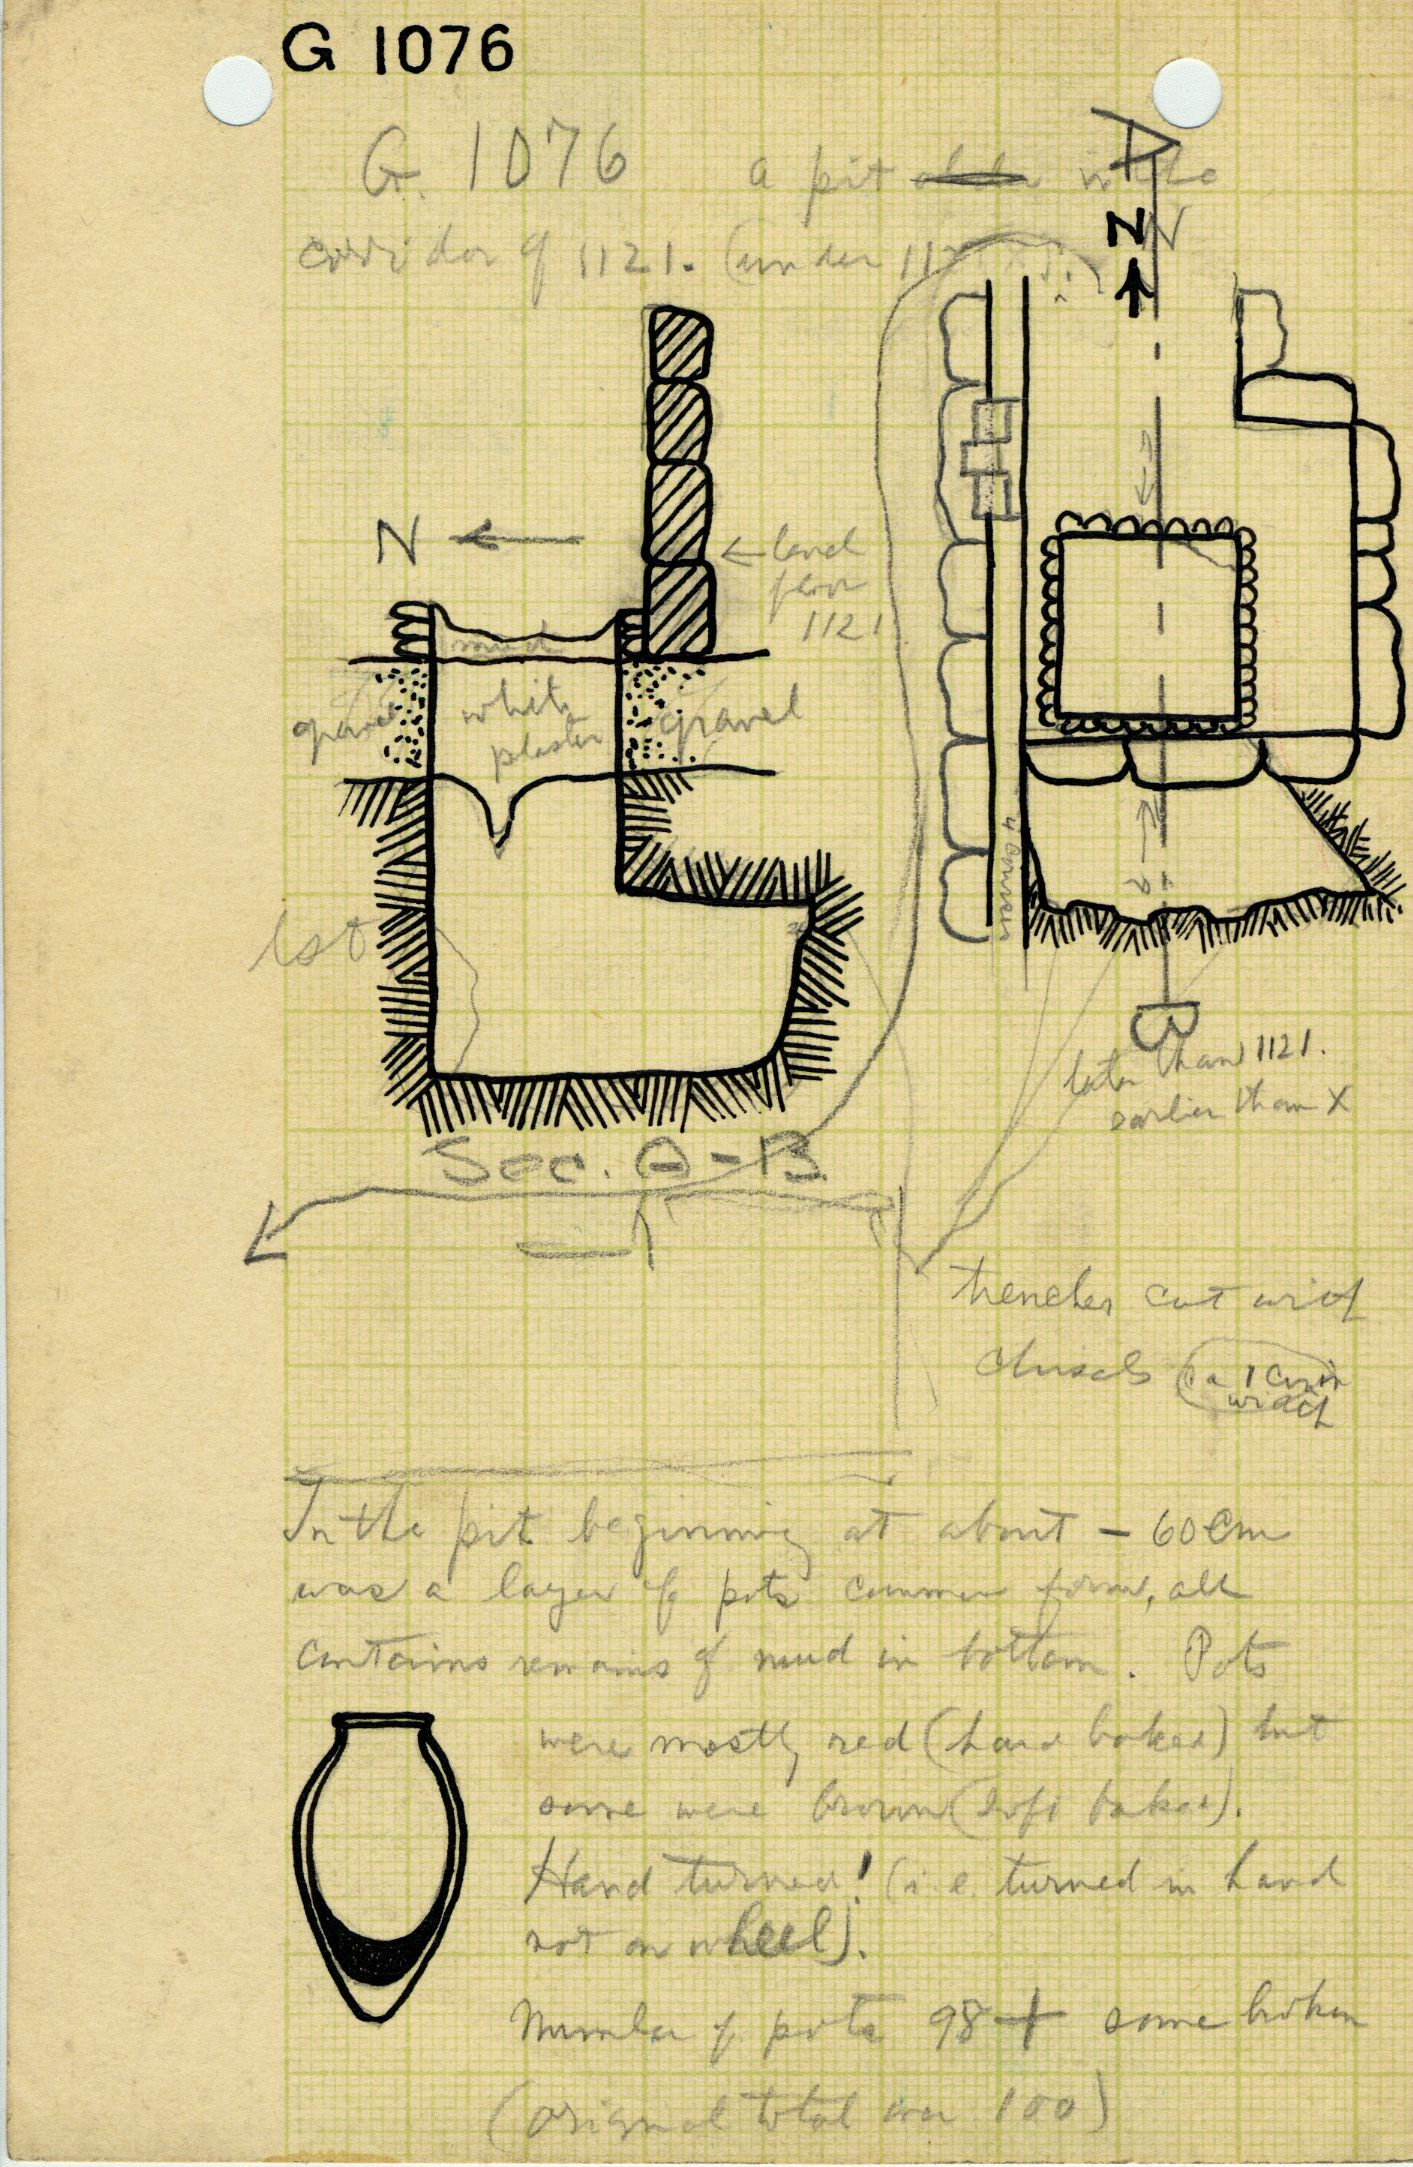 Maps and plans: G 1076, Shaft X (within G 1121 chapel, below G 1121 X)